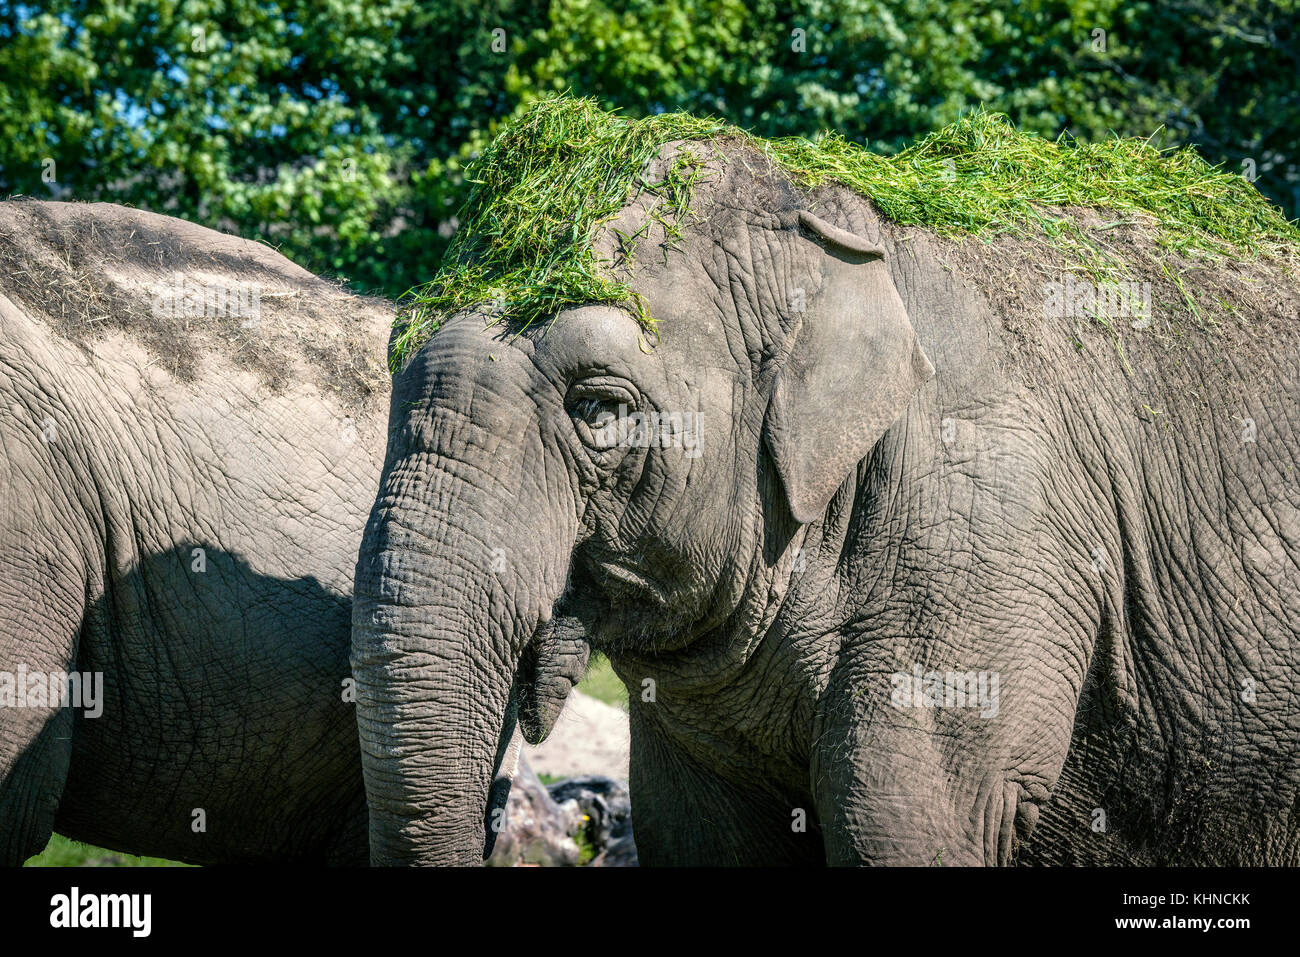 Elephant eating with green grass on the head to cool it down - Stock Image